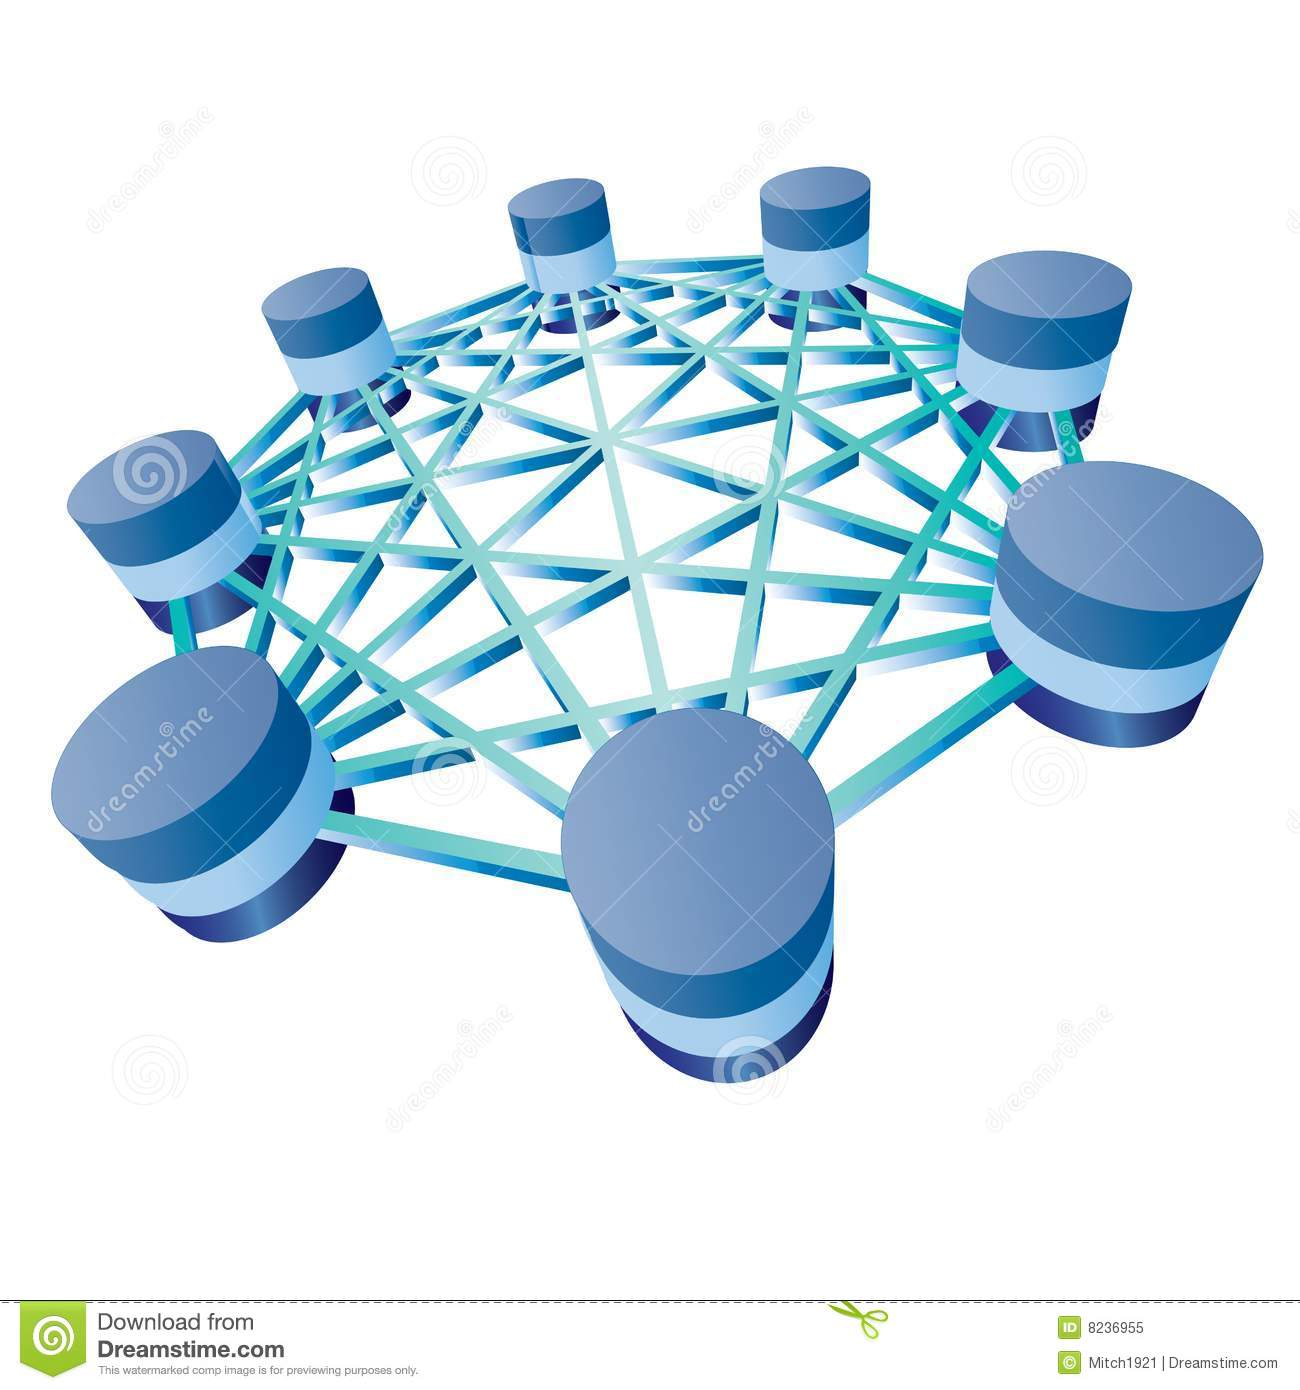 Database. Illustration of database and network architecture isolated over  white background Royalty Free Stock Photo